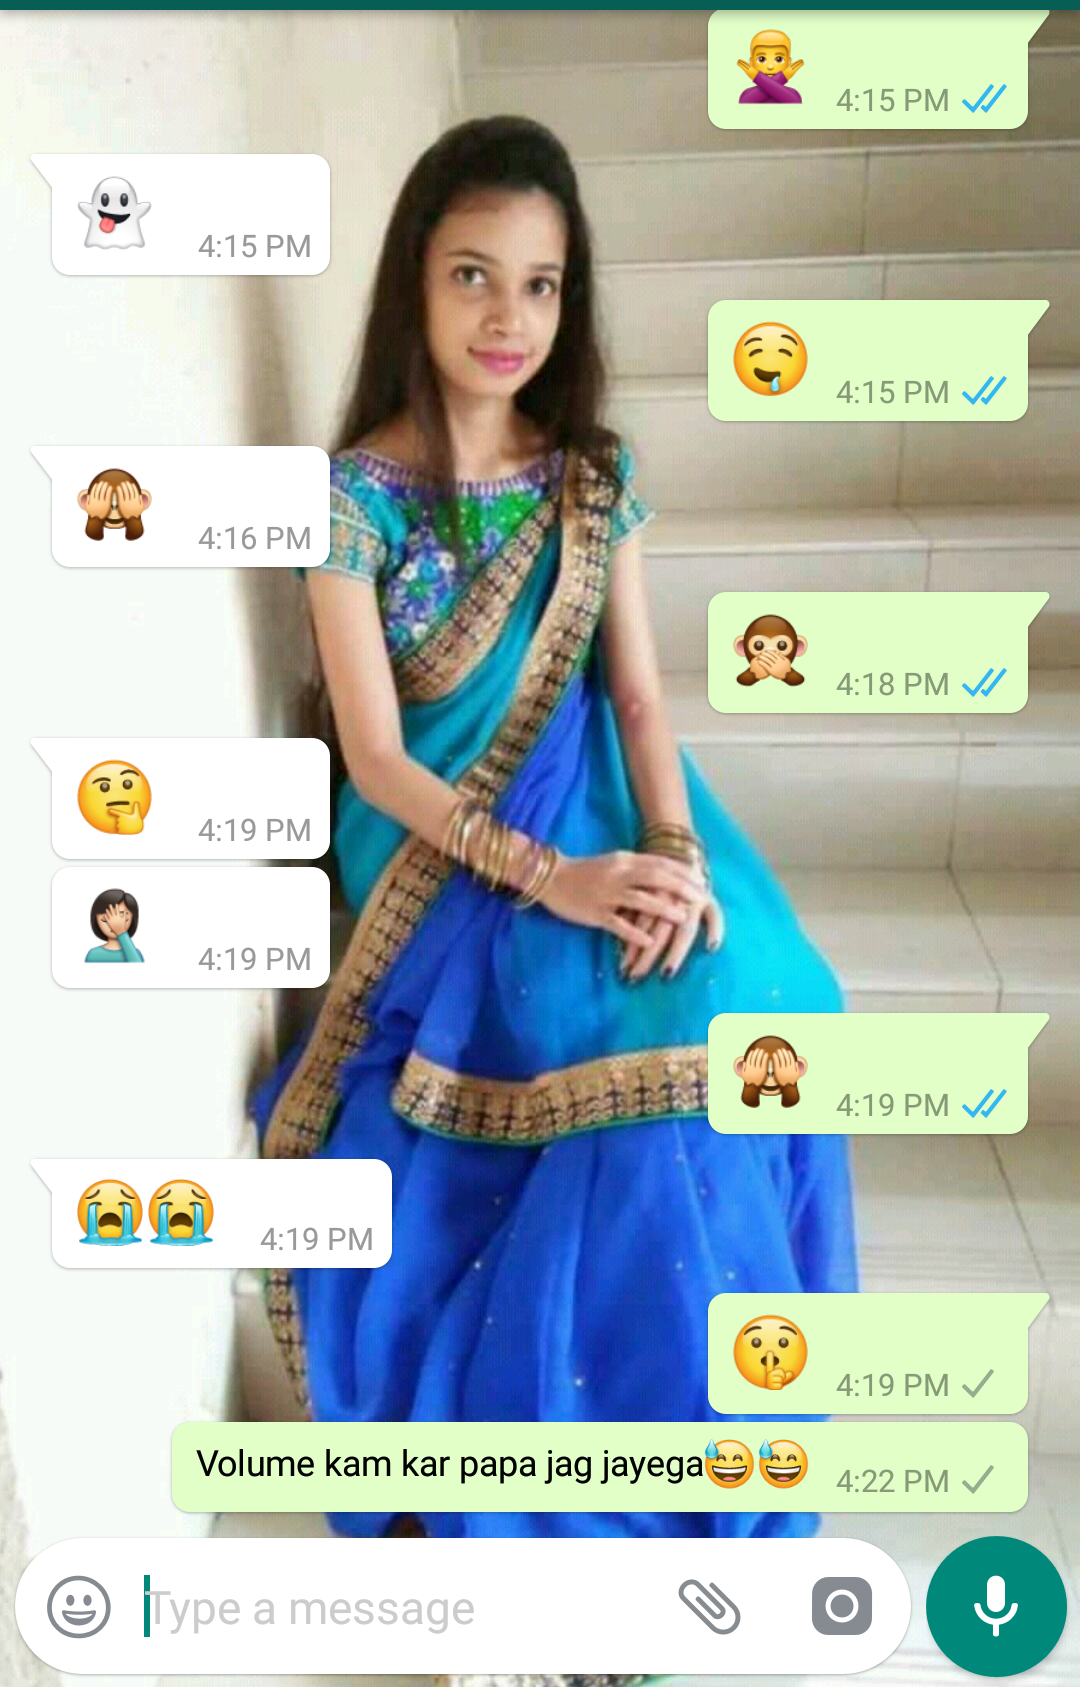 Emoji Silent conversation funny what's app chat with gf